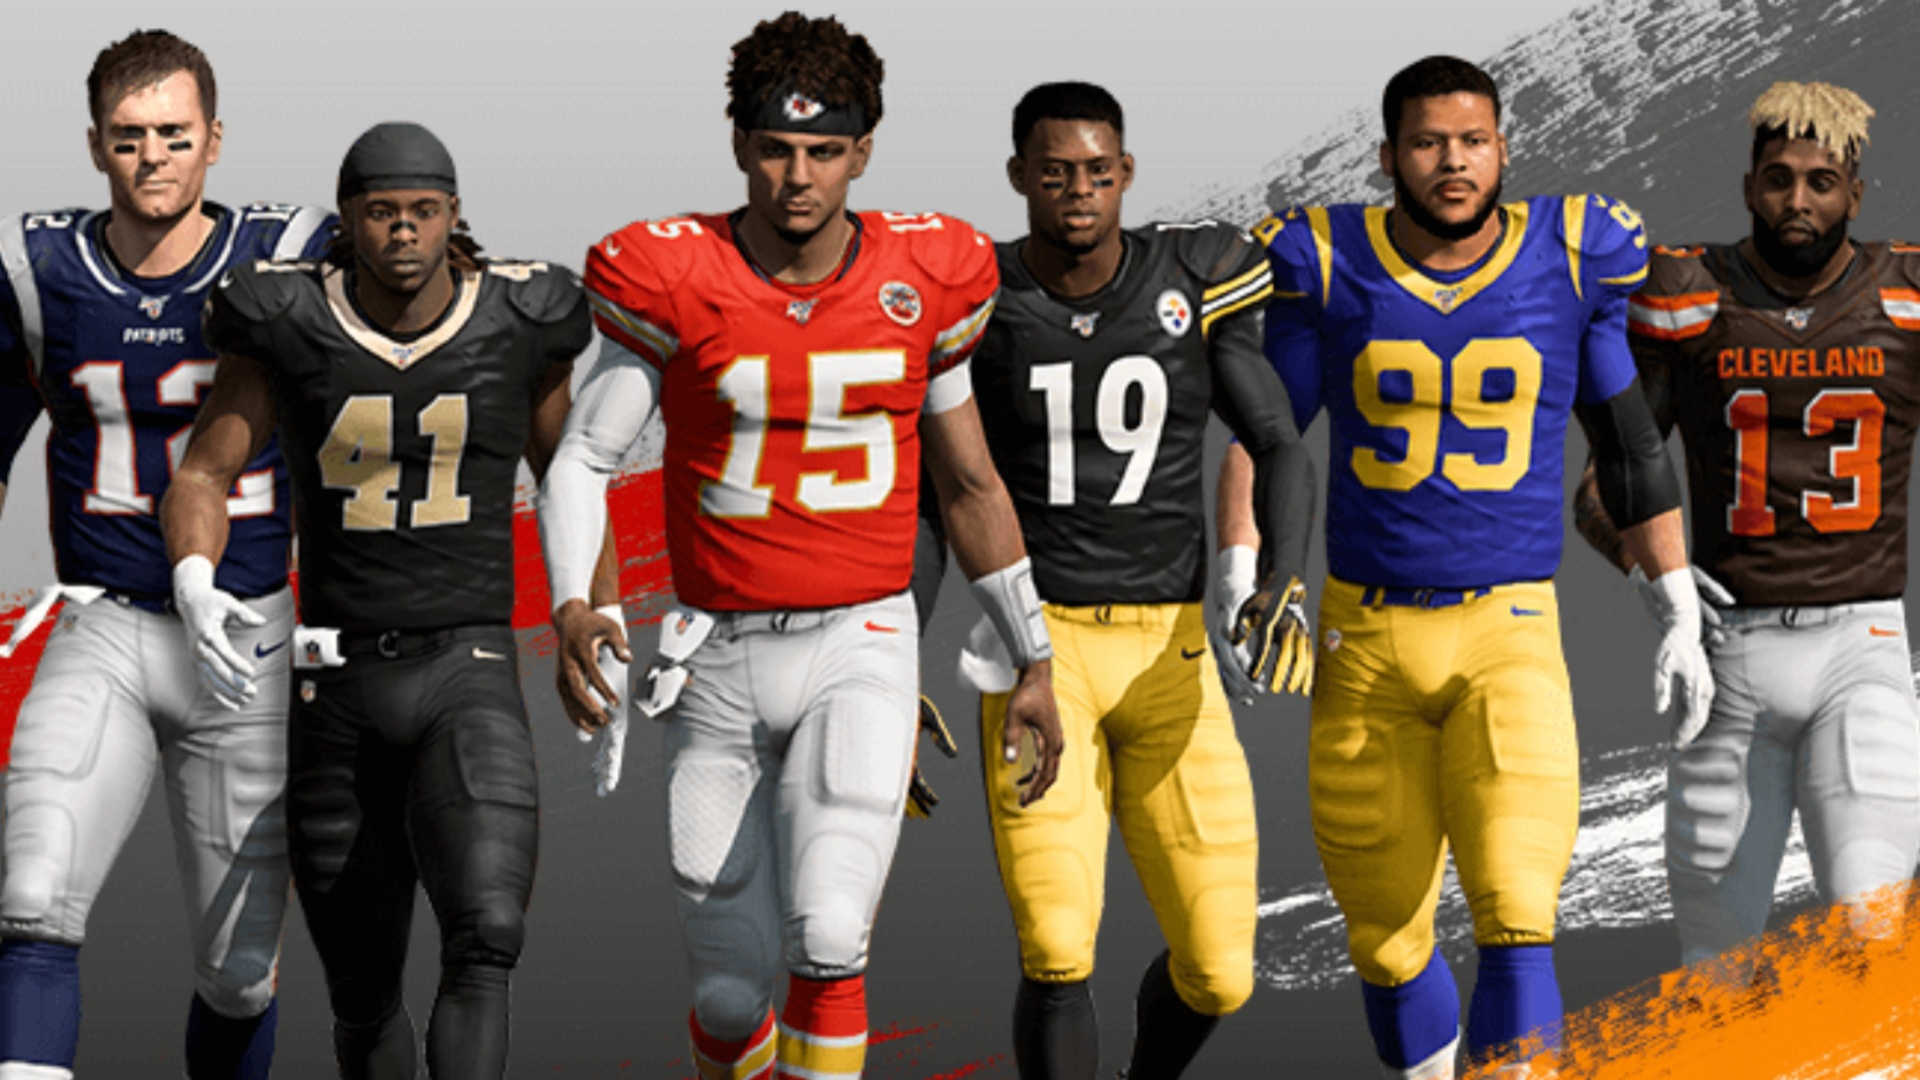 EA and NFL extend licensing deal to 2026 for future Madden games - htxt.africa